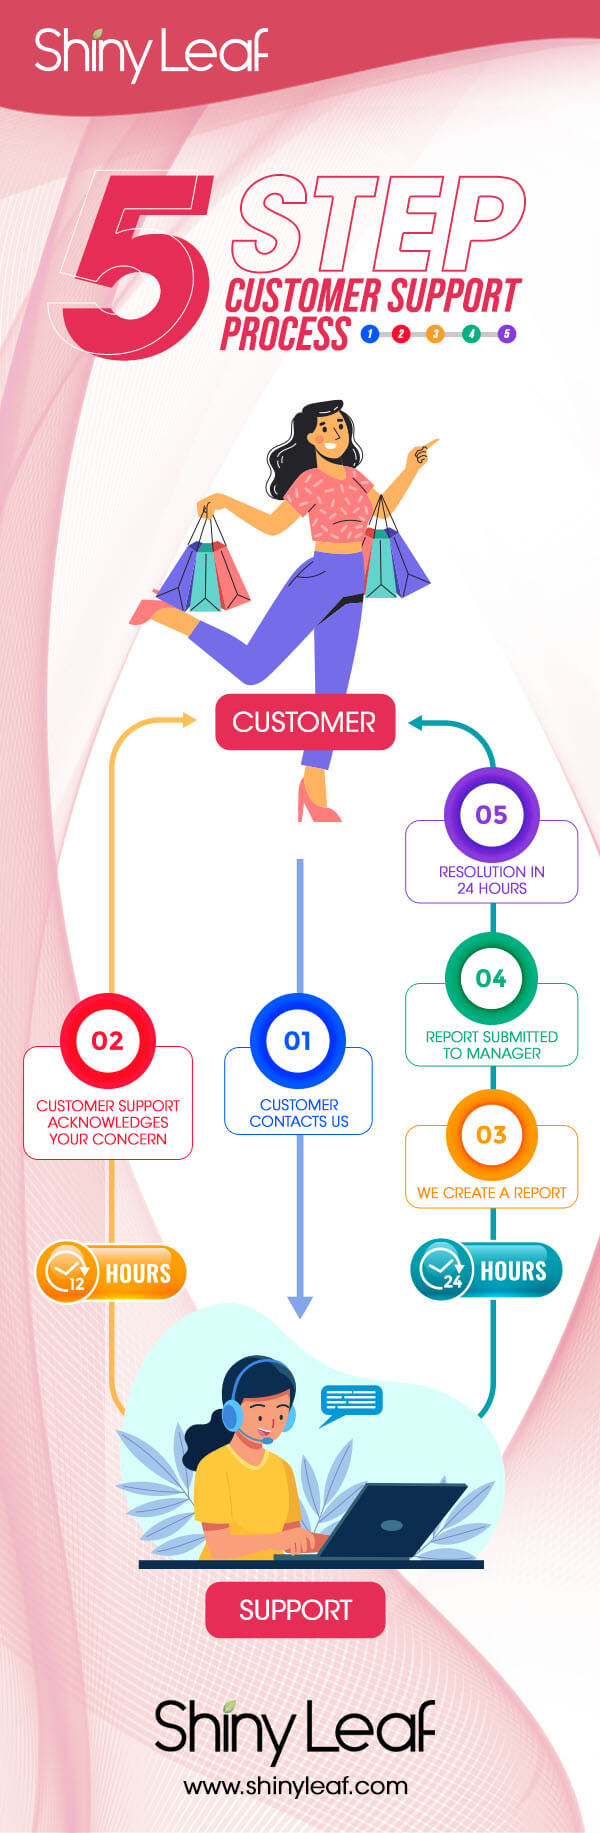 5-Step Customer Support Process Infographic